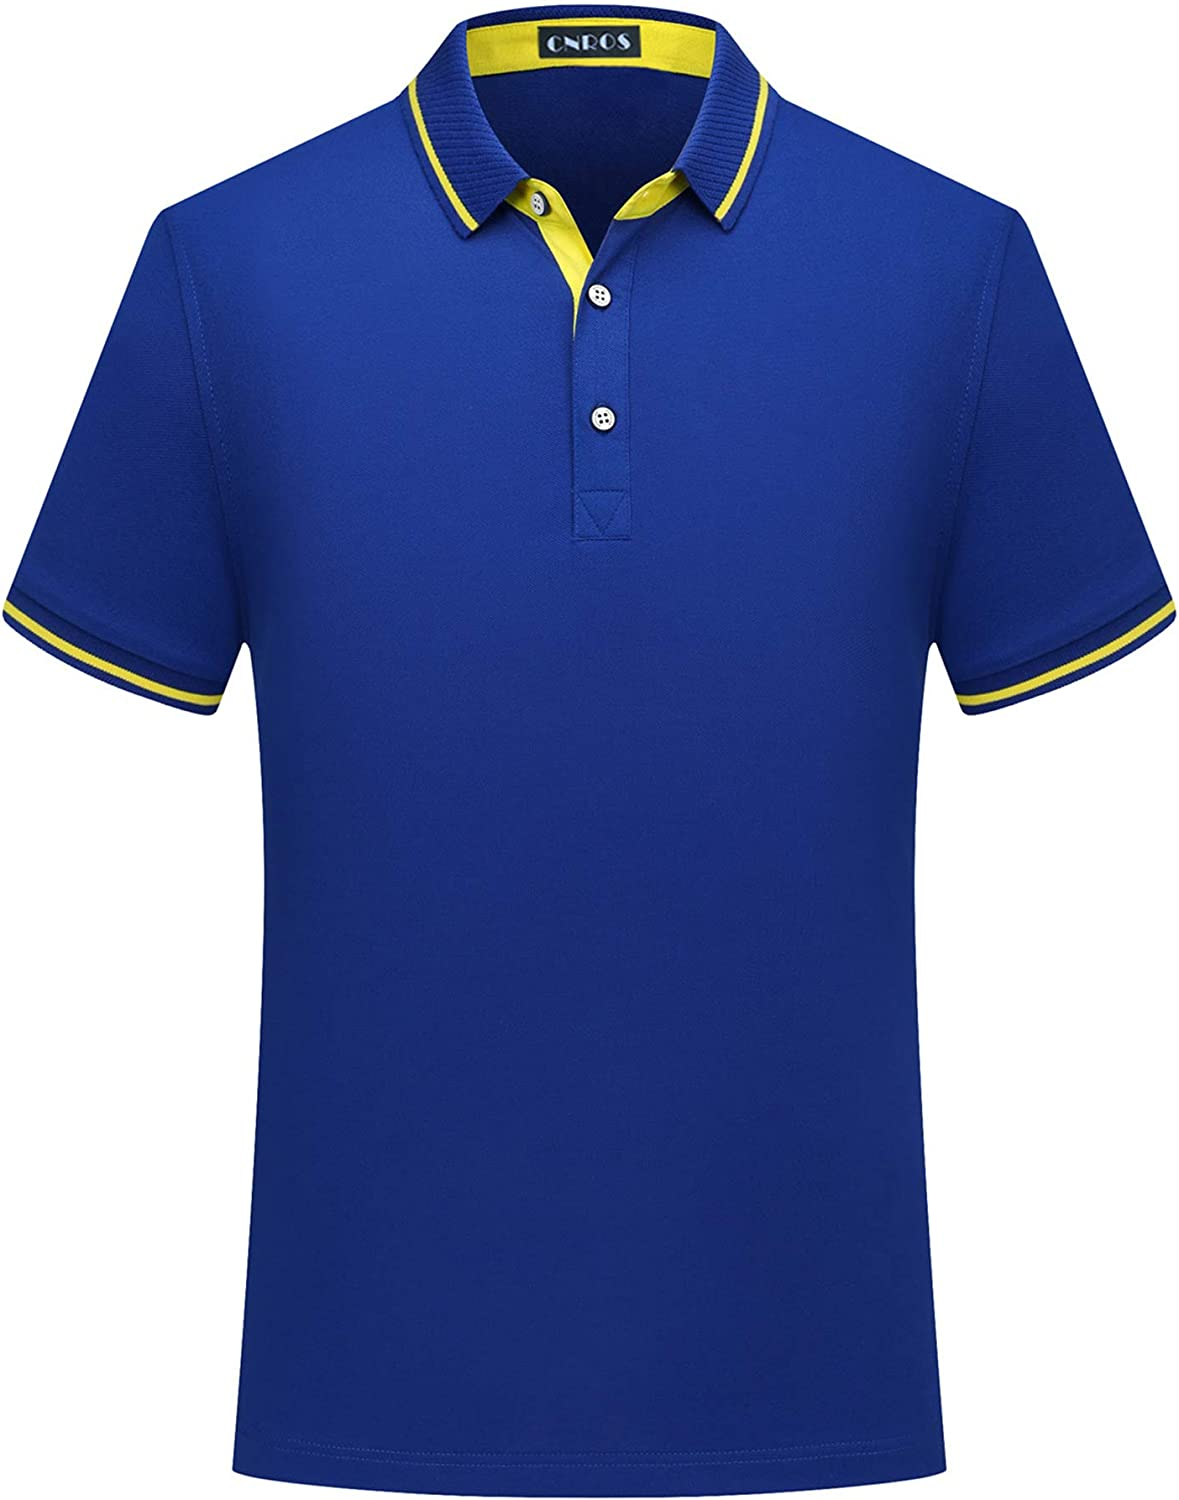 CNROS Men's Short Max 48% OFF Beauty products Sleeve Polo Solid Shirt